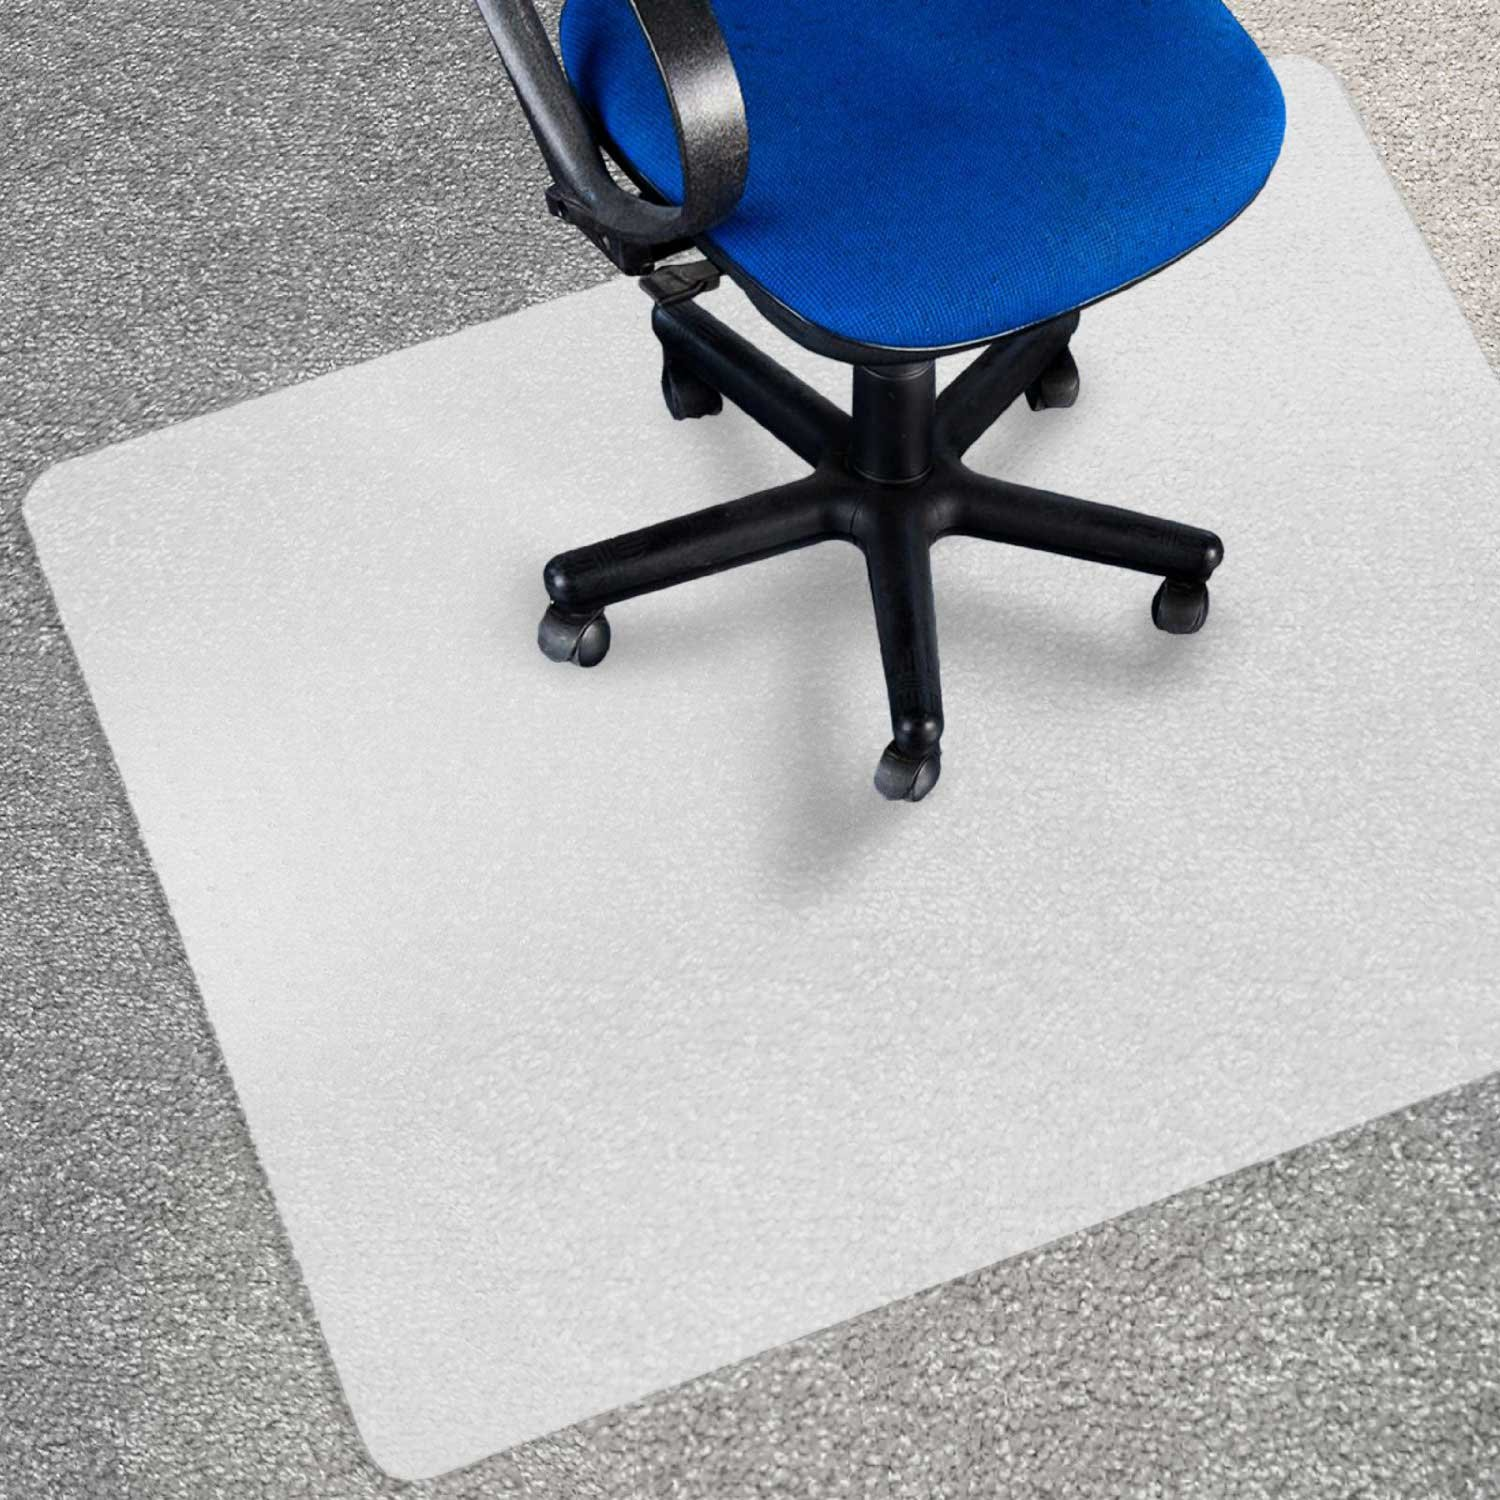 Amazon.com : Chair Mat for Carpets | Low / Medium Pile Computer ...